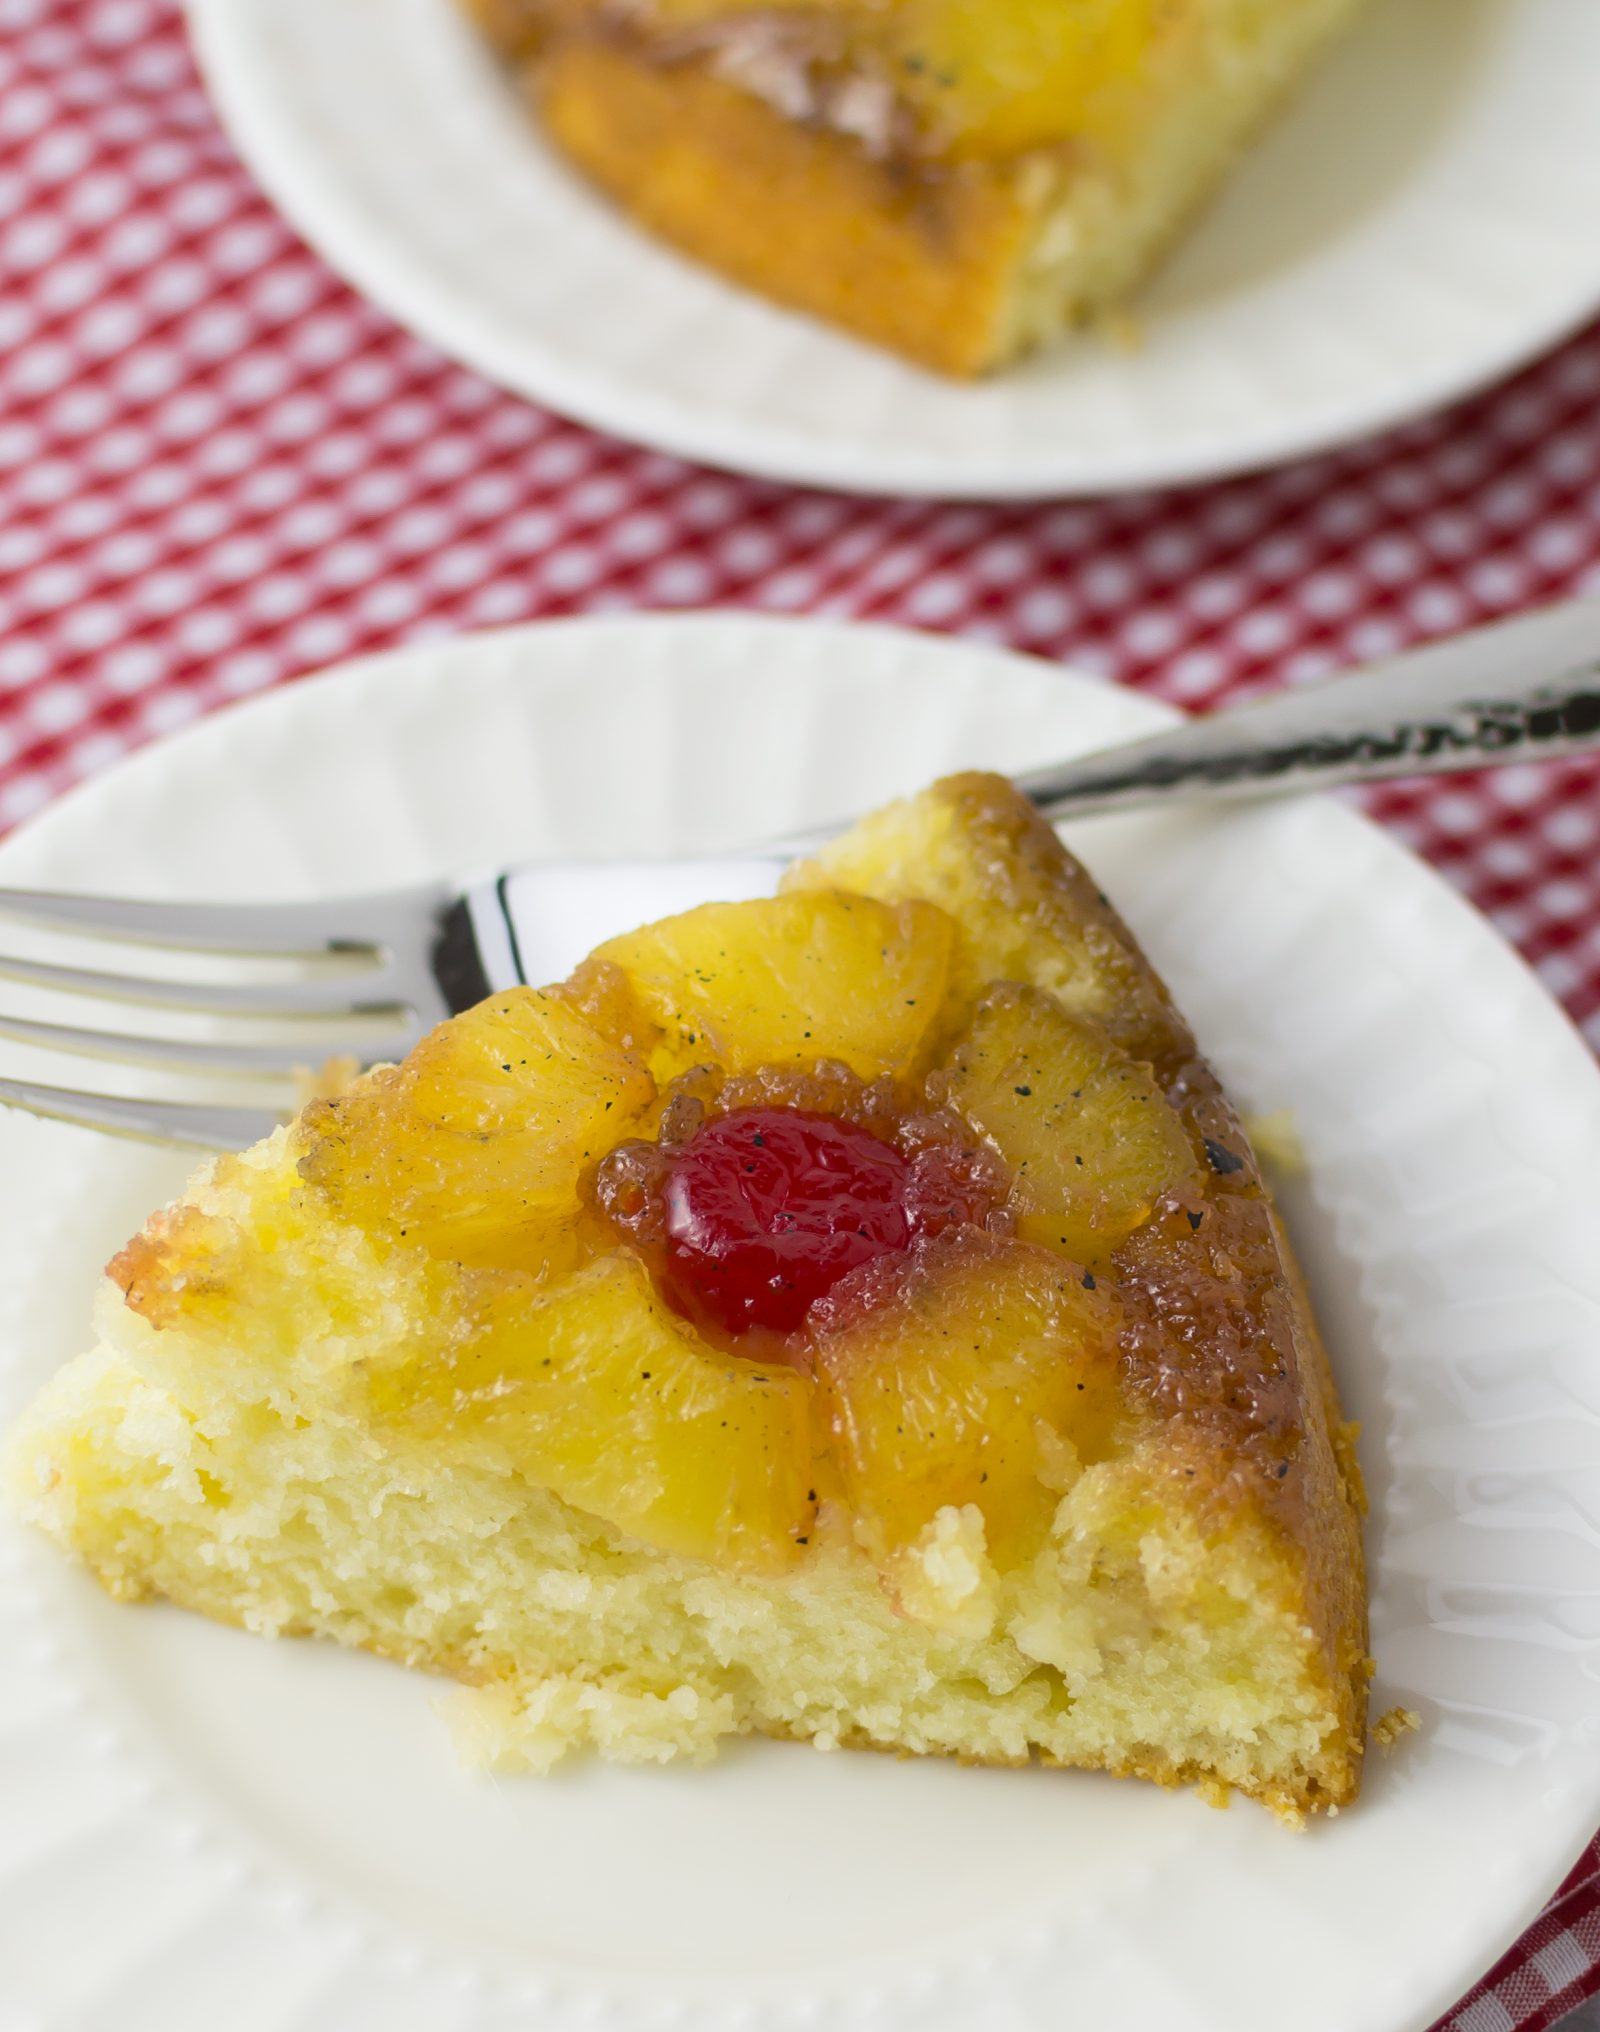 PINEAPPLE UPSIDE DOWN CAKE | Little Spice Jar